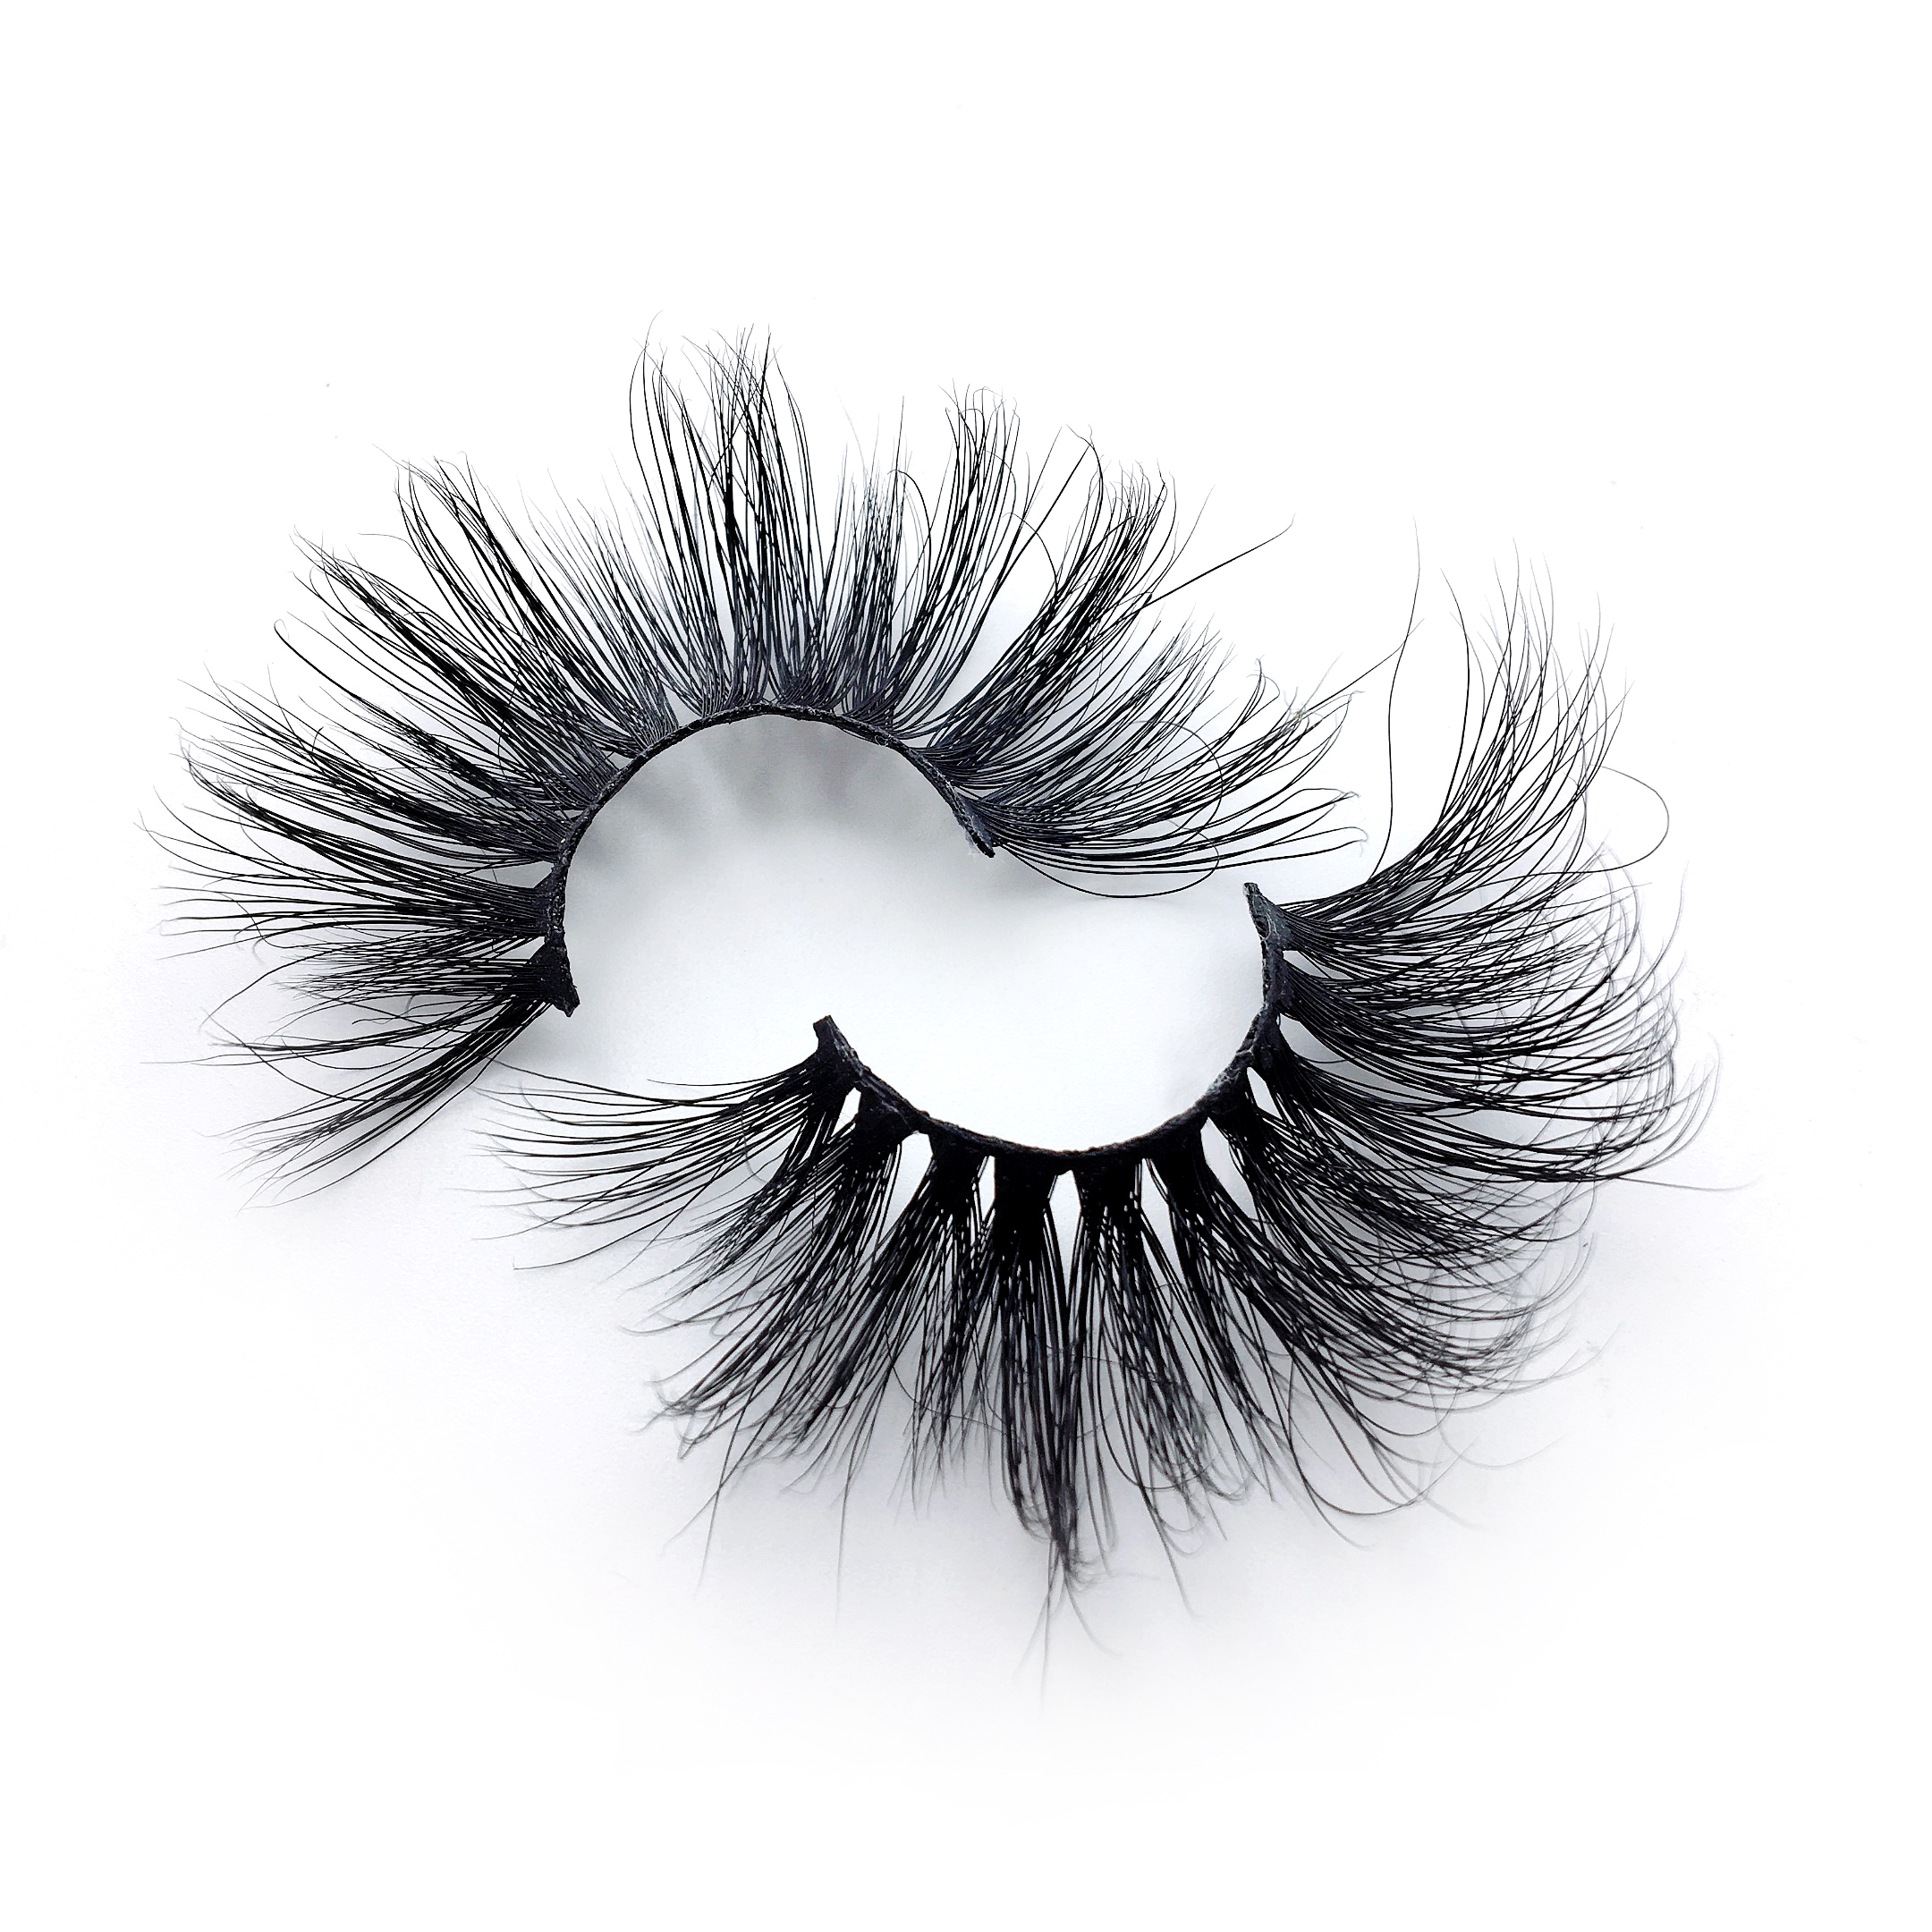 Wholesale customization eshinee mink lashes 27 mm mink lashes 25mm eyelashes 3d With Custom Packaging Your Own Logo Eyelash Box